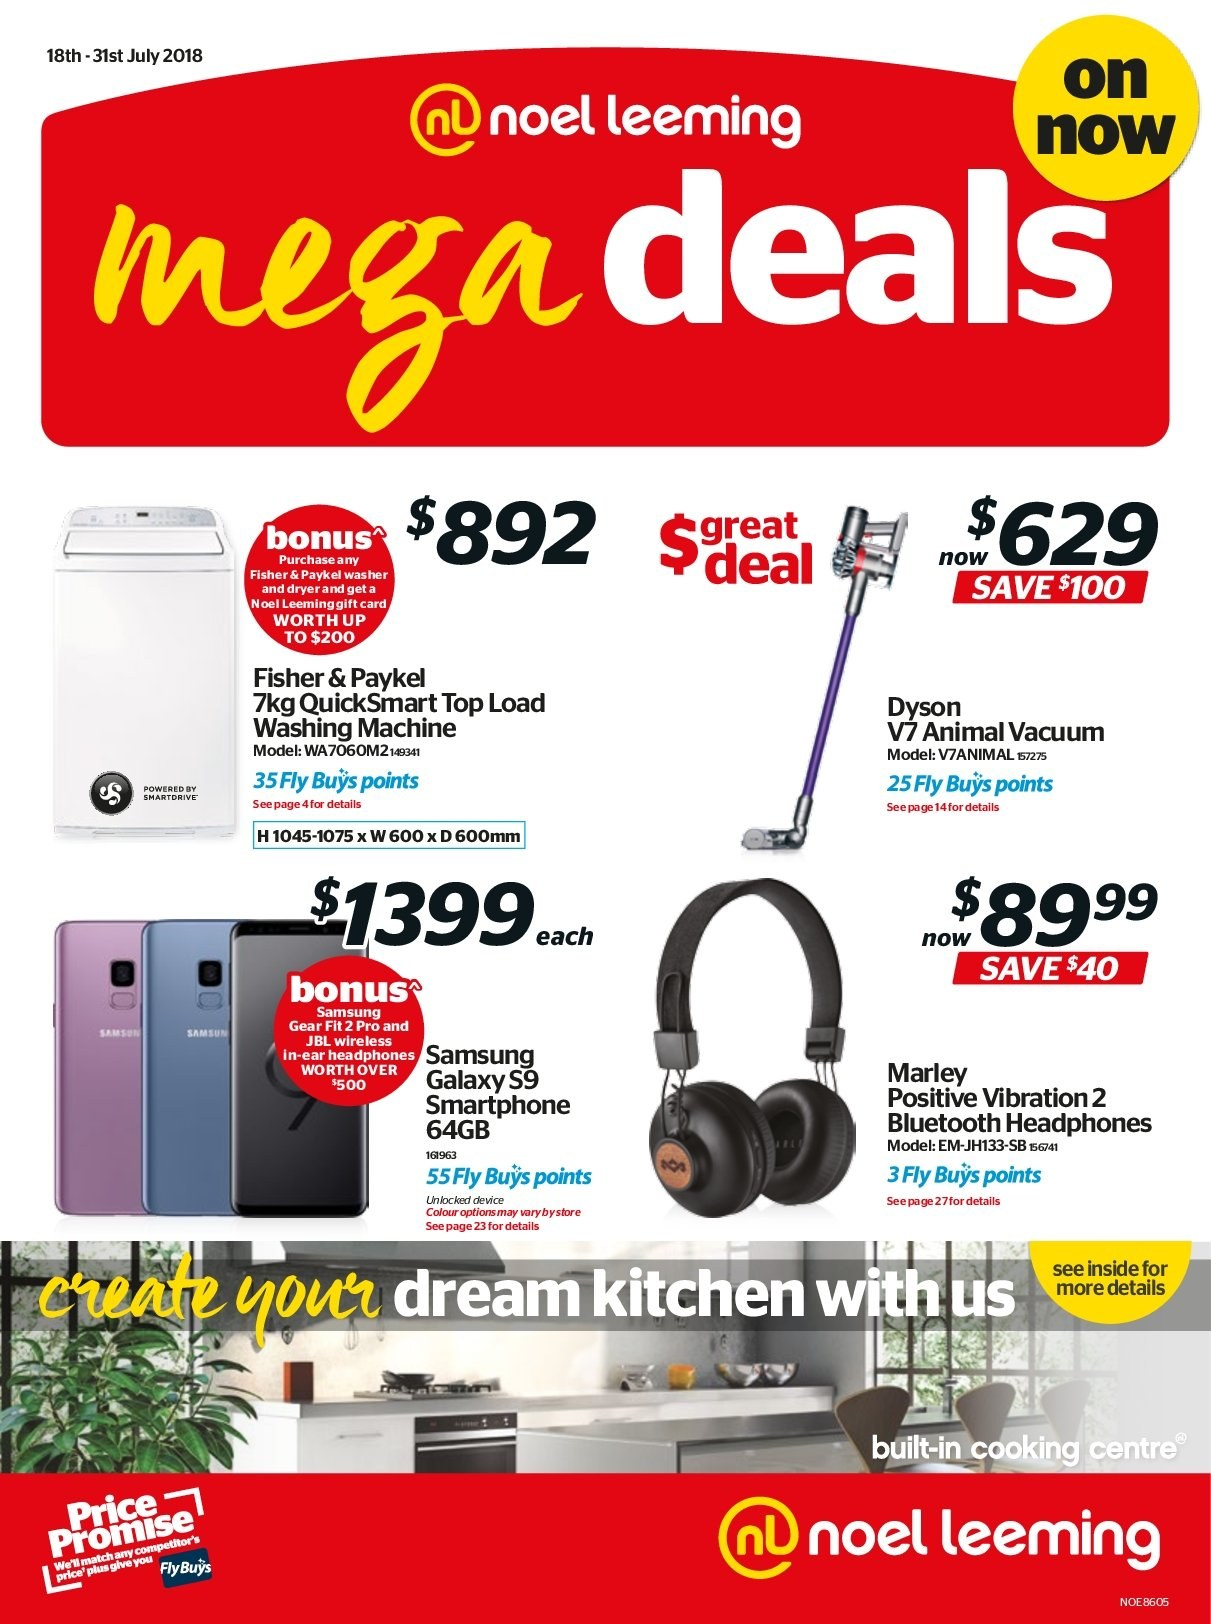 Noel Leeming mailer - 18.07.2018 - 31.07.2018 - Sales products - Samsung Galaxy, Samsung, Samsung Galaxy S, smart phone, Samsung Galaxy S9, JBL, headphones, washing machine, Dyson, vacuum cleaner. Page 1.